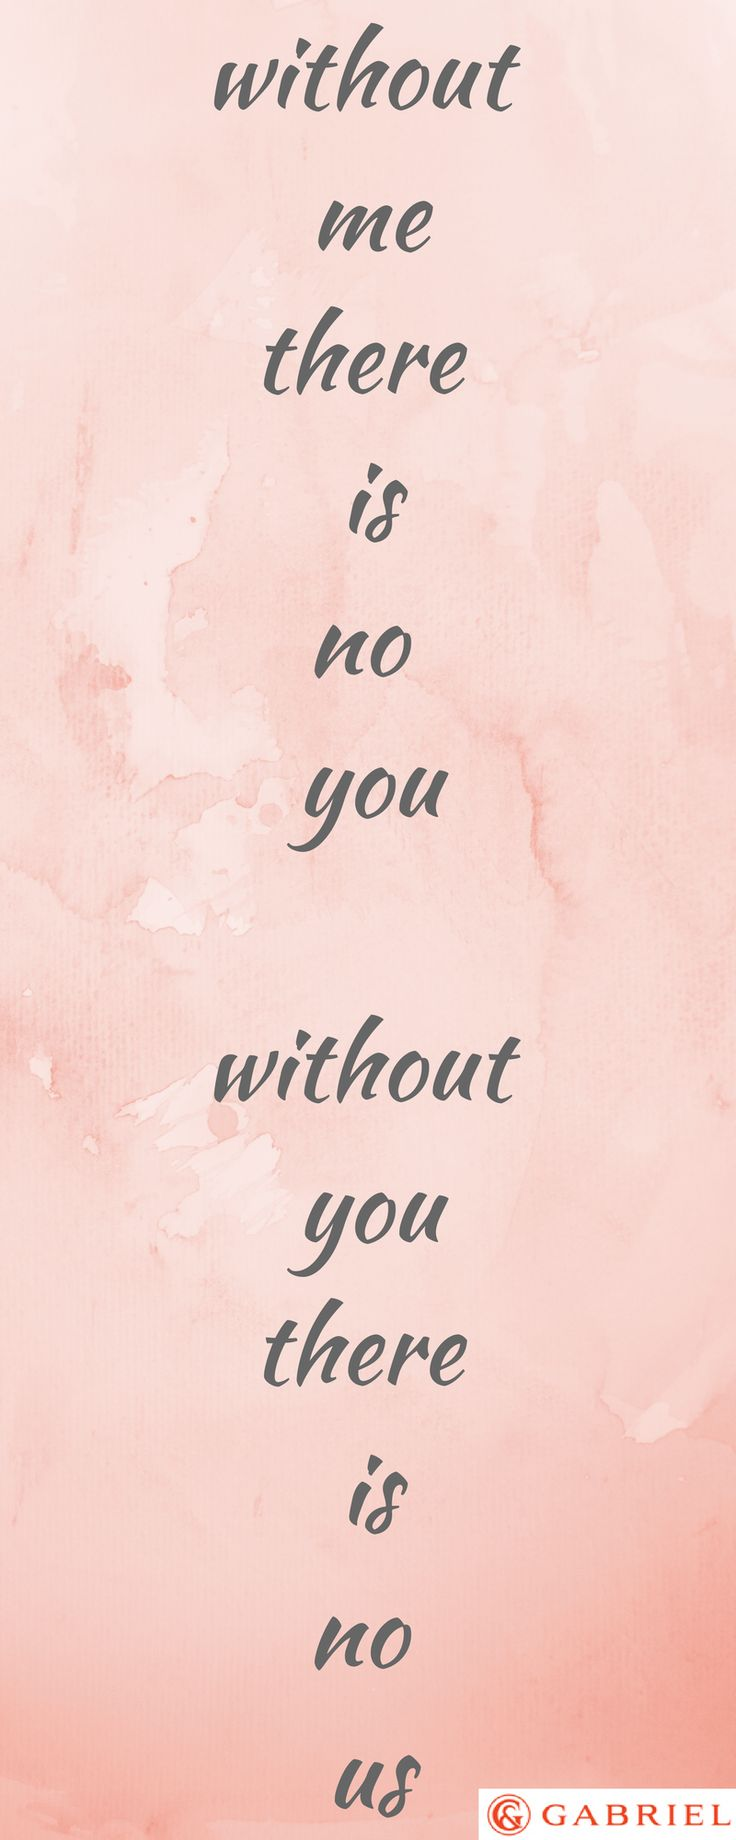 Without me there is no you, without you, there is no us.